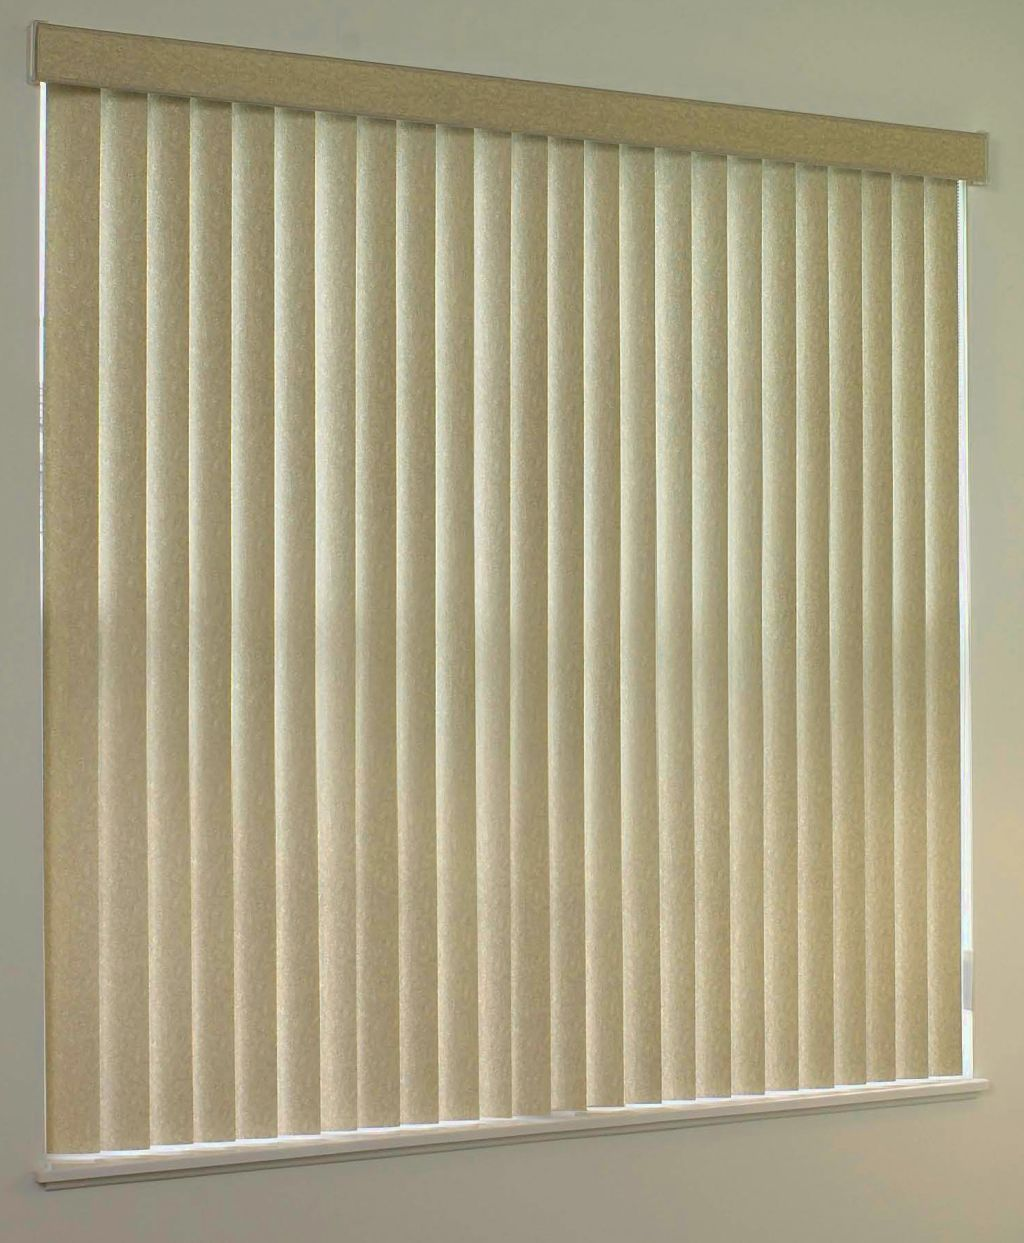 fabric blinds lowes cloth vertical blinds ideas from lowes for windows lowes besthomedecorscom home decor inspiration modernblinds bambooblindsandcurtains